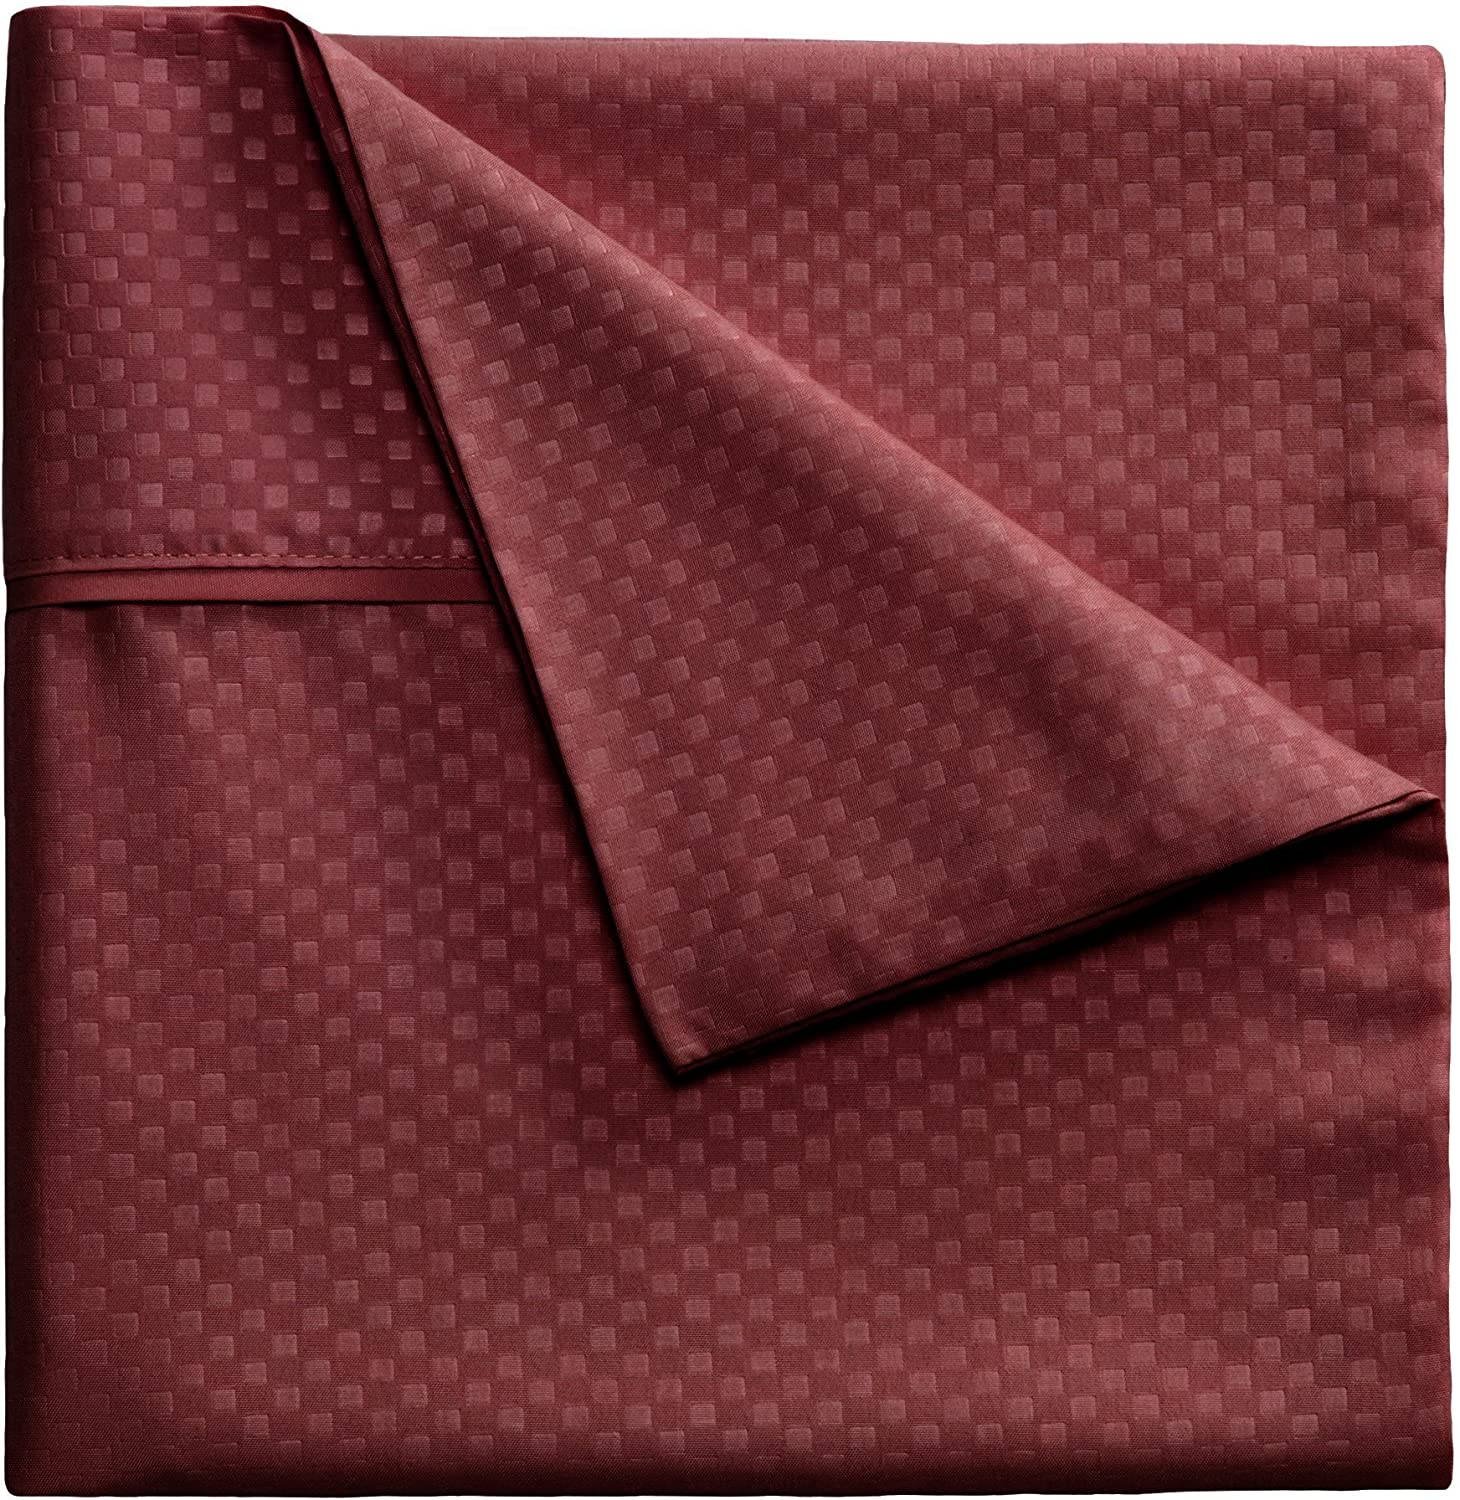 Brushed Microfiber Sheets Set- 3 Piece Hypoallergenic Bed Linens with Deep Pocket Fitted Sheet and Embossed Design by Lavish Home (Burgundy, Twin)